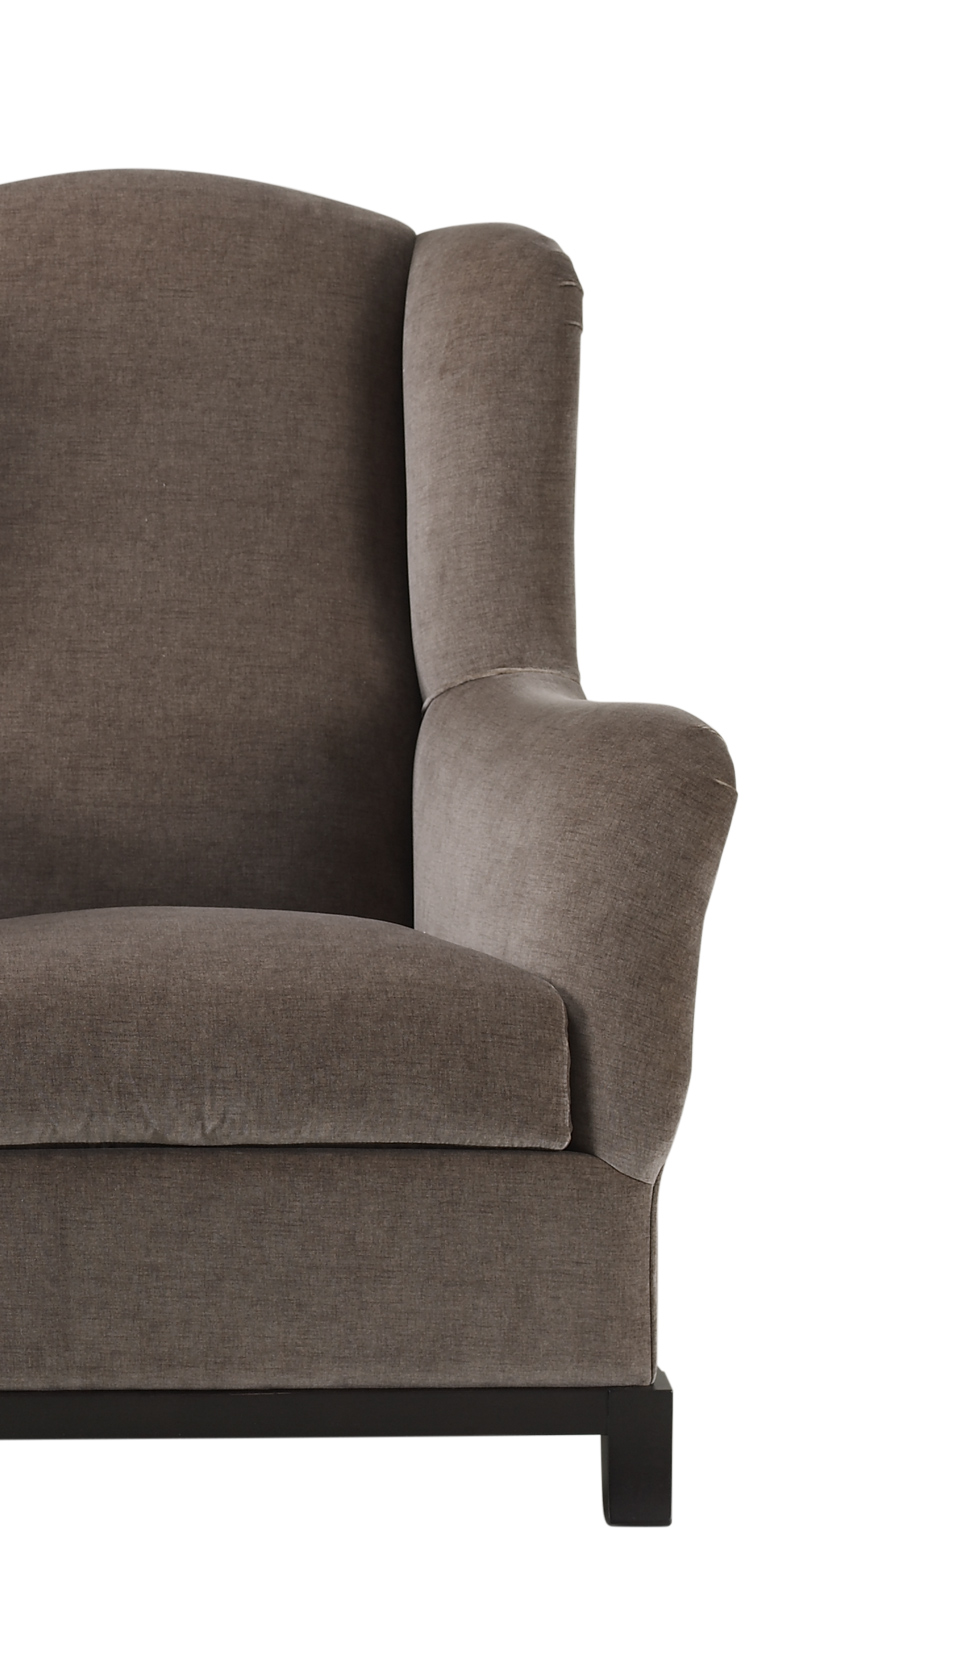 Dettaglio di Madame A, an armchair covered in fabric or leather with wooden base, from Promemoria's catalogue | Promemoria